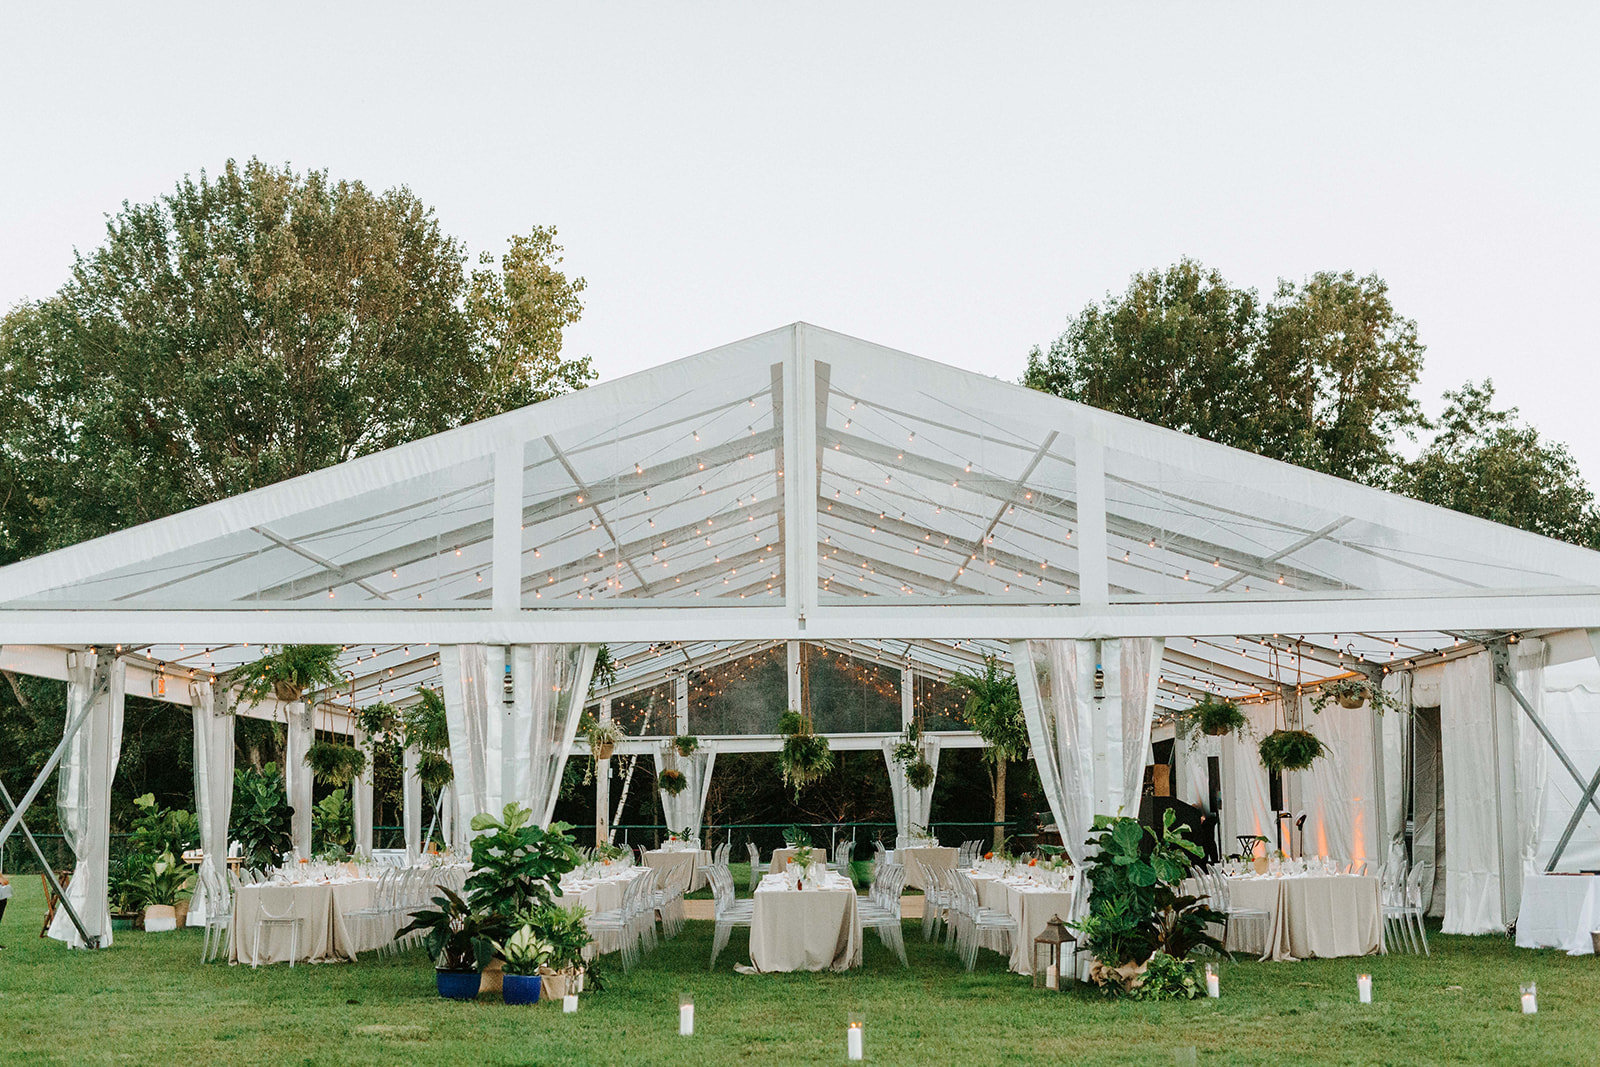 Monica-Relyea-Events-Hyde-Photography-Camp-Scatico-Wedding-Upstate-New-York-NY-Hudson-Valley-Elizaville-Tivoli-Tropical-Clear-Tent-Outdoor-NYC-Planner-Fall-Jewish-608